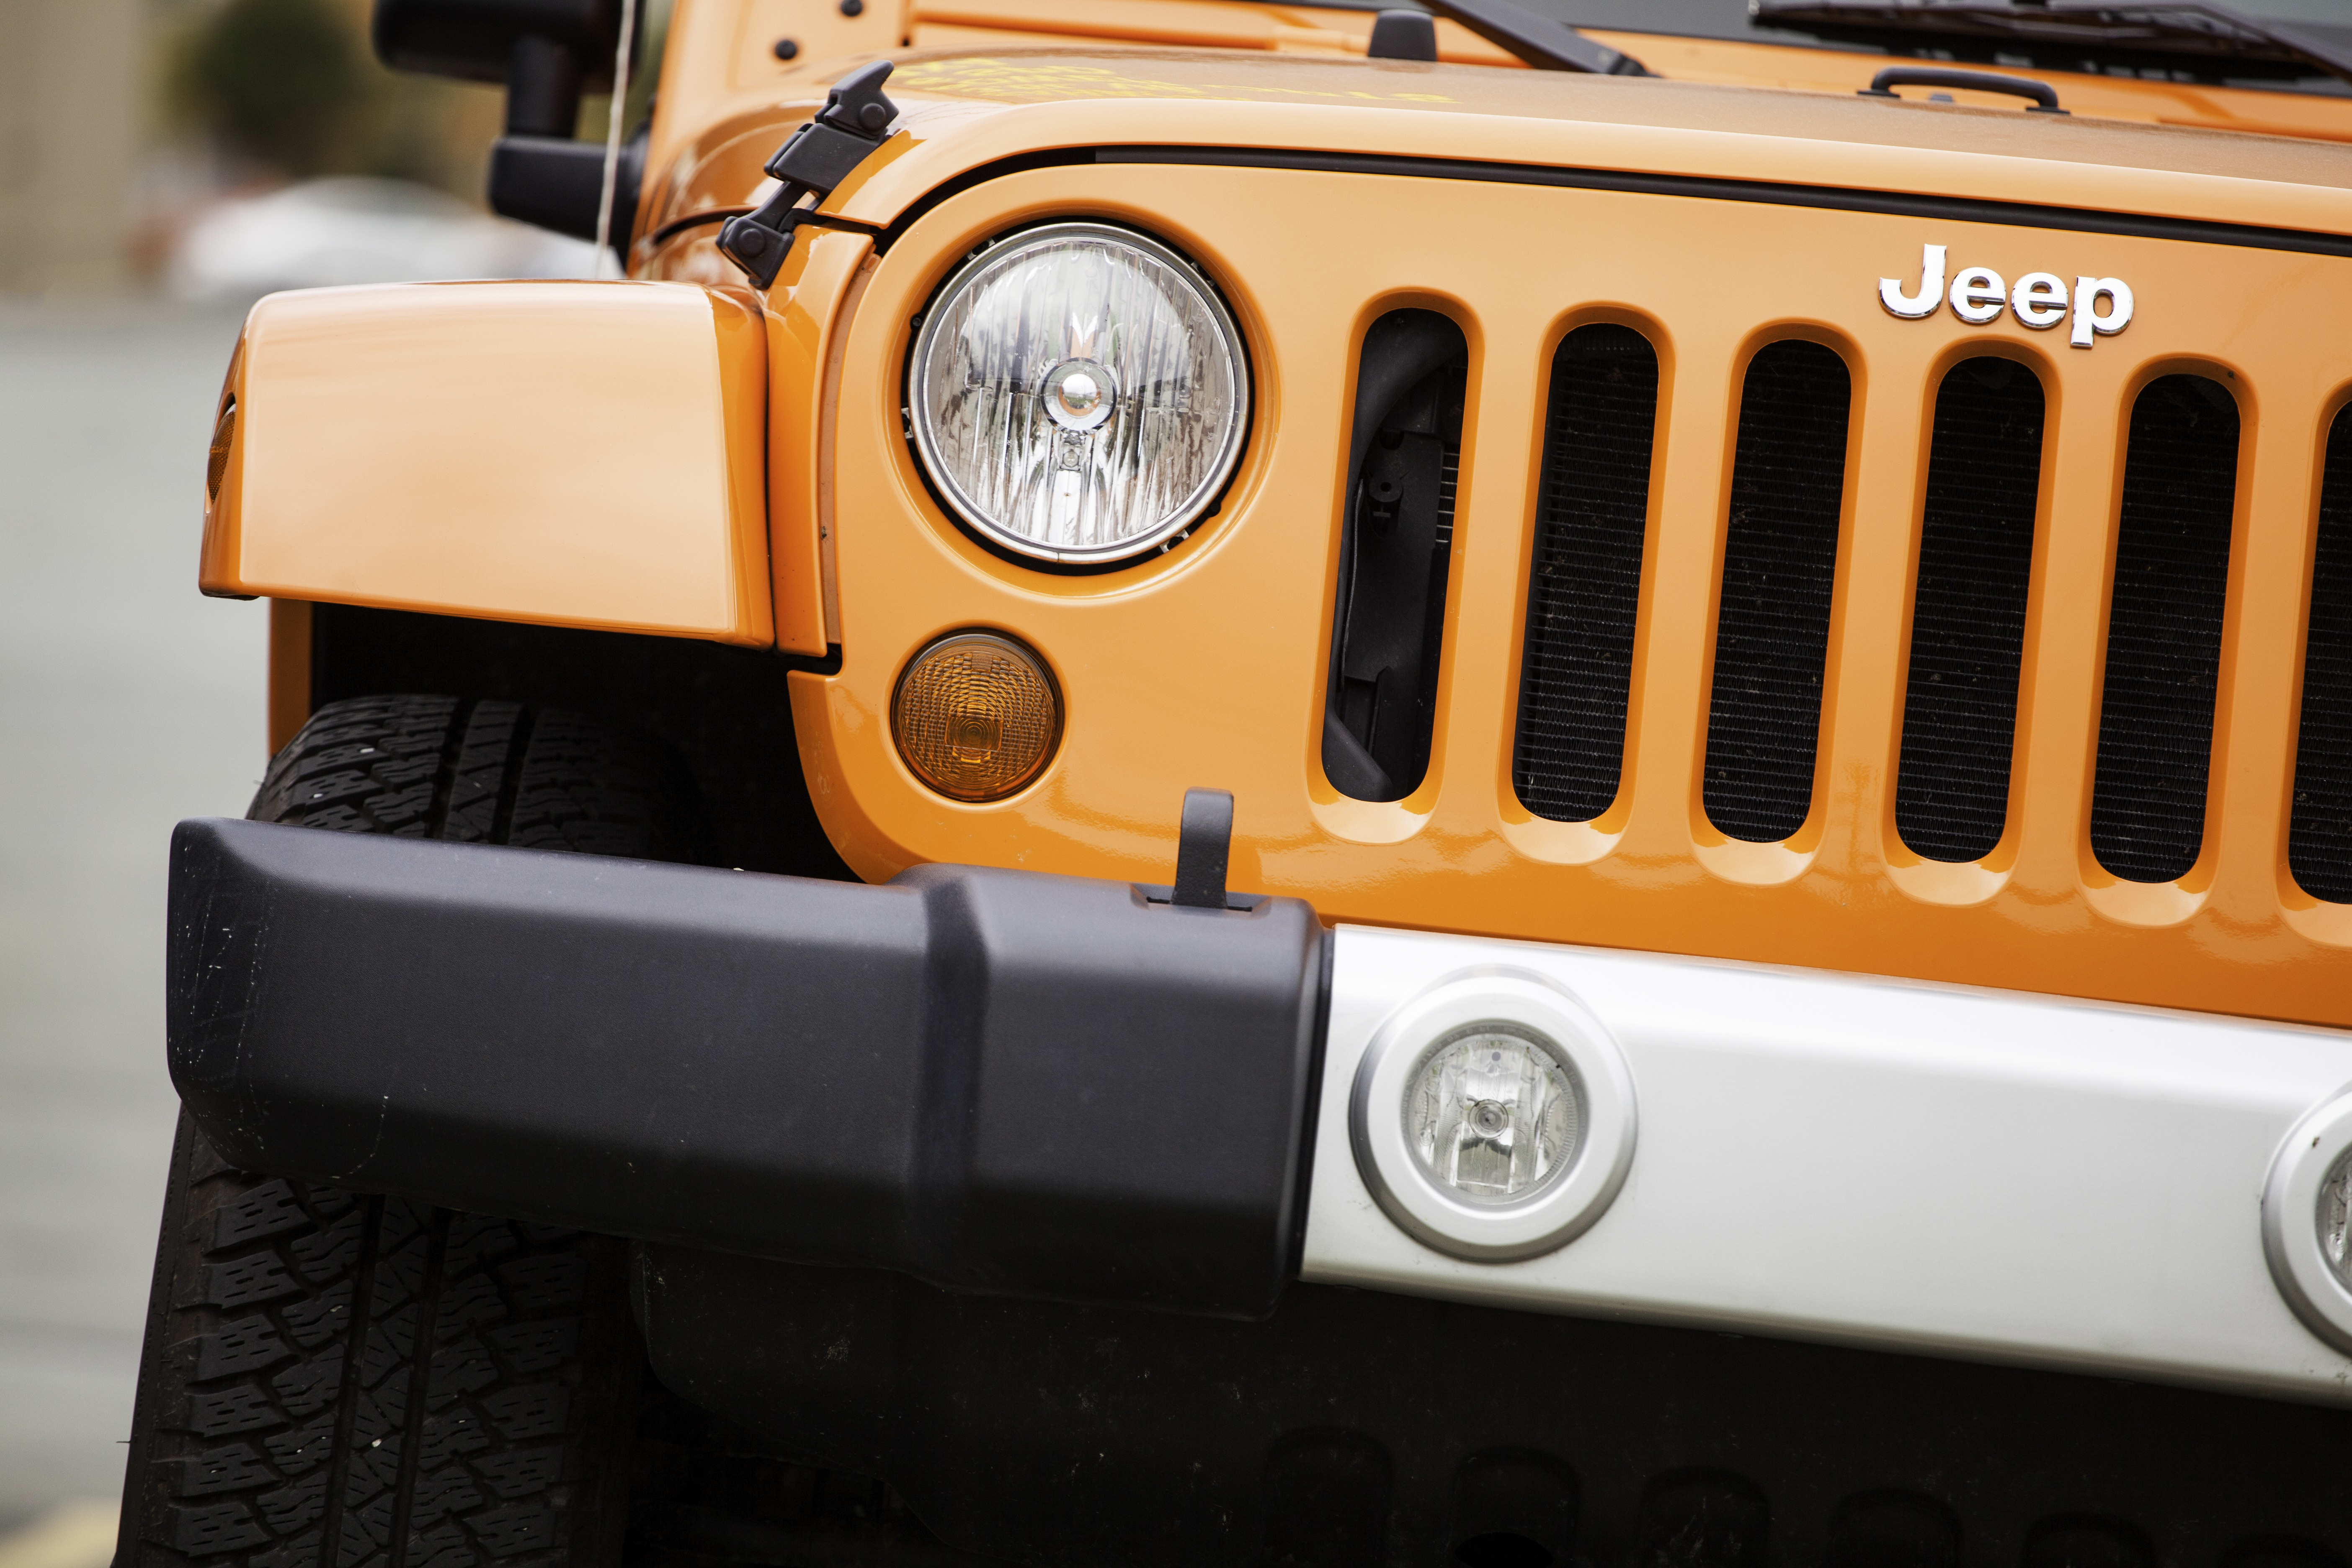 How To Add A Backup Camera To Your Jeep Wrangler